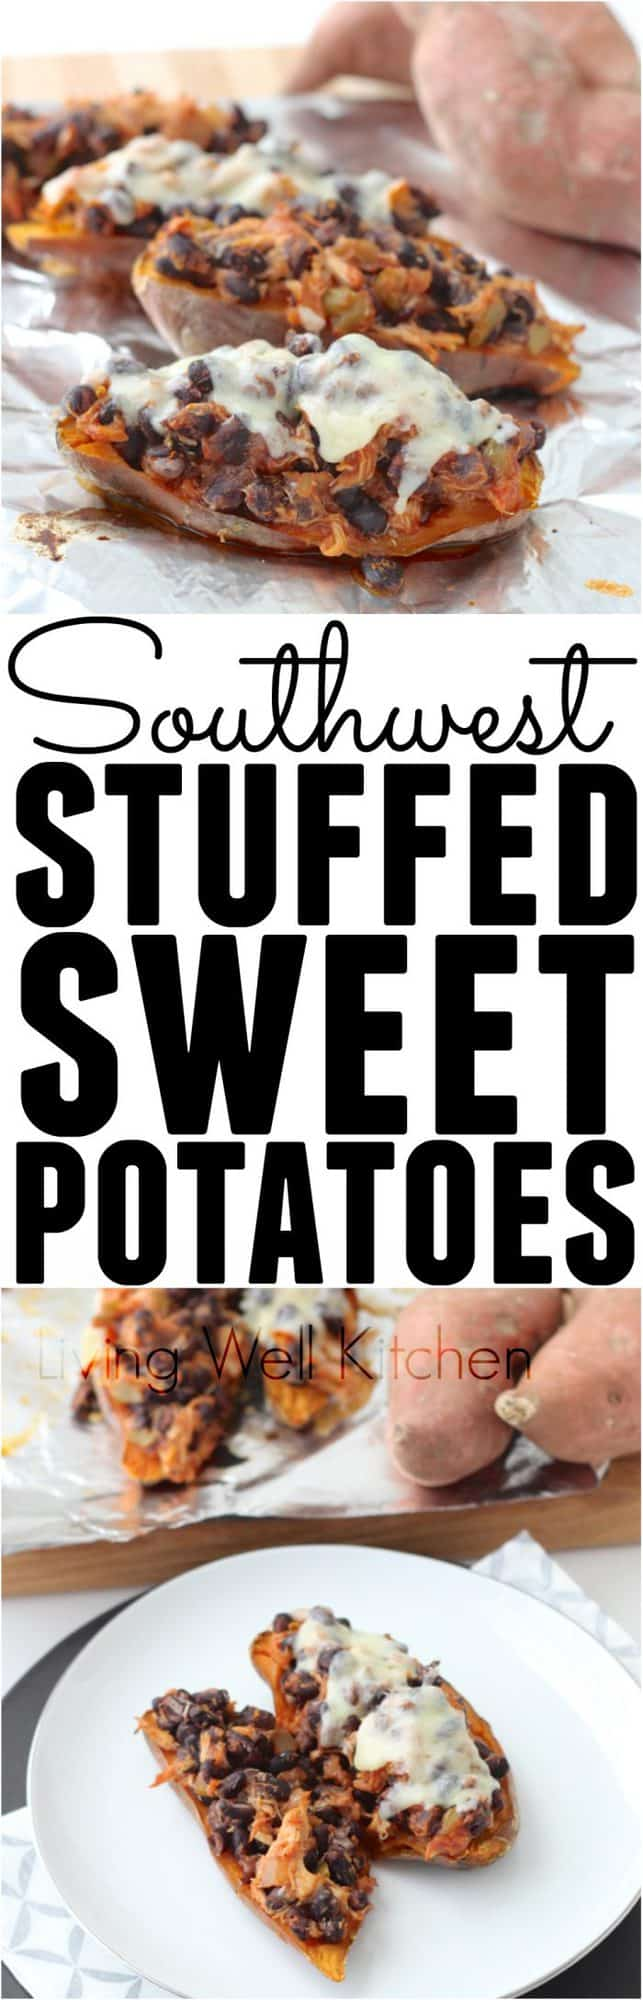 Southwest Stuffed Sweet Potato is a super easy and budget friendly dinner idea. This four ingredient recipe takes advantage of leftovers for a delicious meal that costs next to nothing.